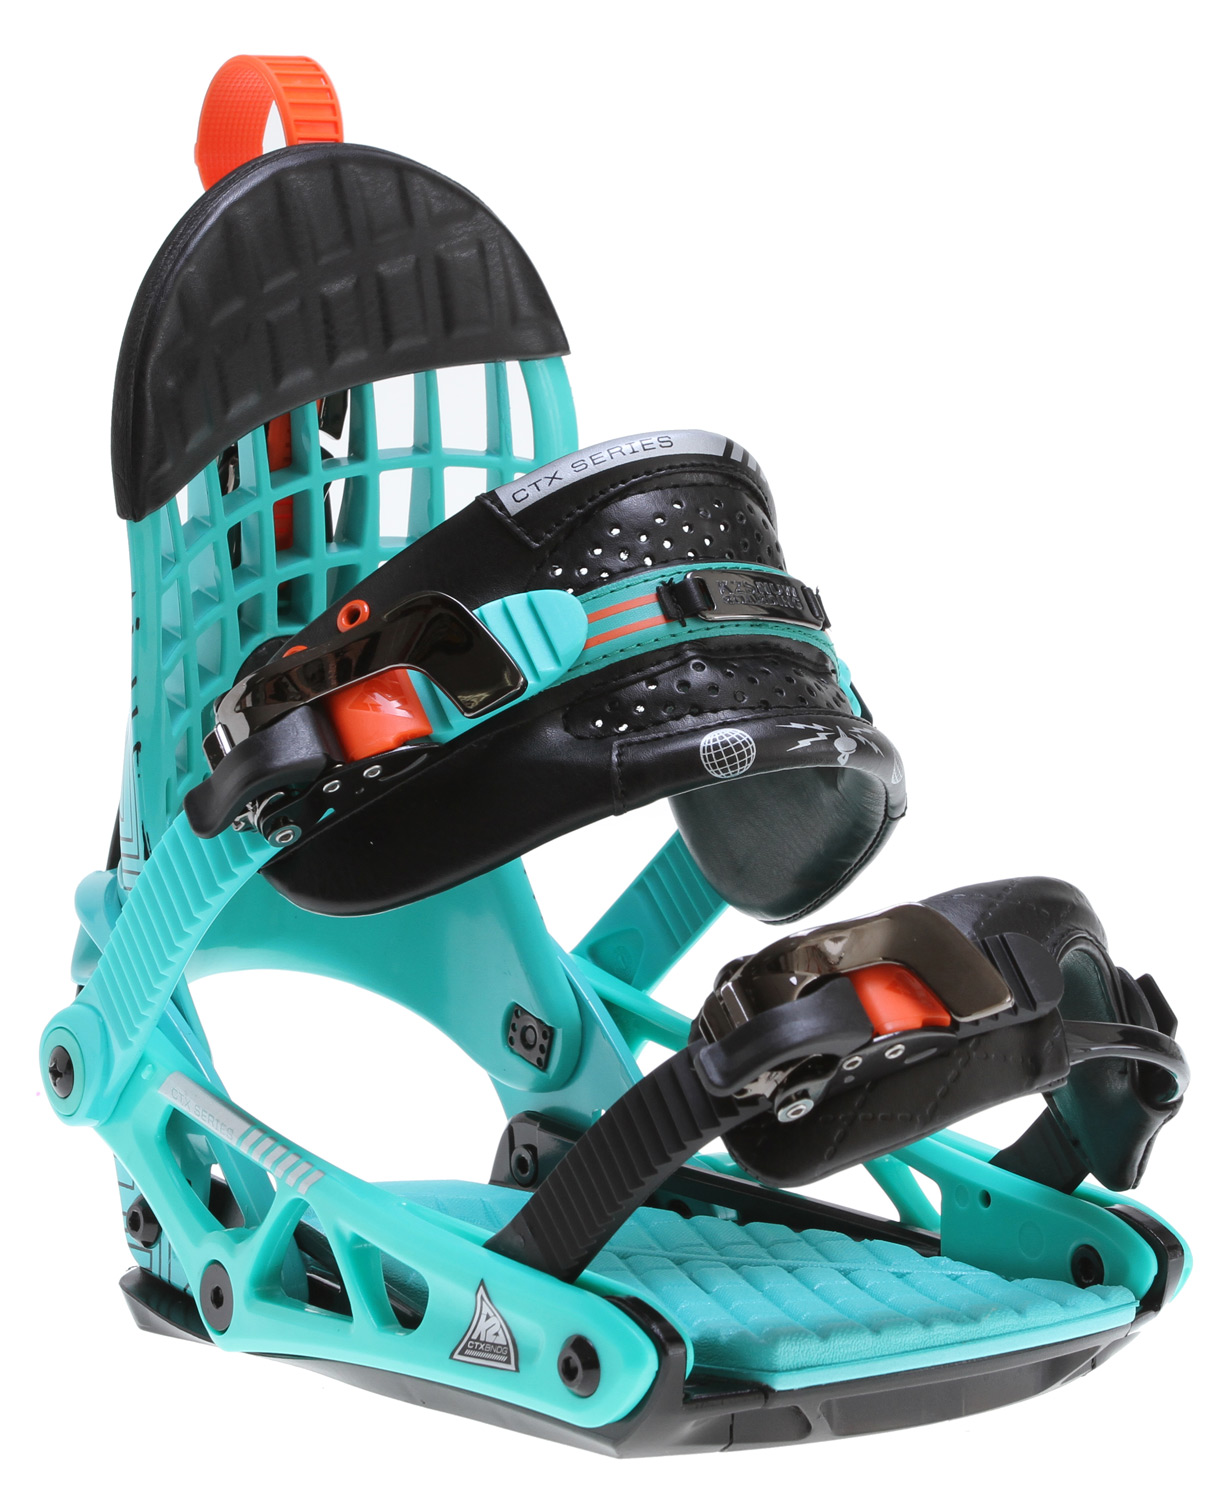 Snowboard The 2012-2013 K2 Cinch CTX combines top-end K2 binding tech with the patented Cinch System. Harshmellow cushioning and canted footbeds usher the CTX into a class all it's own. The CTX is made for the rider looking to ride the mountain in a high-end binding that performs like a high end AWD sports coupe.Key Features of the K2 Cinch CTX Snowboard Binding: CHASSIS: Cinch C2 HIGHBACK: Cinch Airlock ANKLE STRAP: Thin Cored Caddi STRAP FEATURES: Cam-Lock Centering TOE STRAP: Tool-Less Universal - $179.95